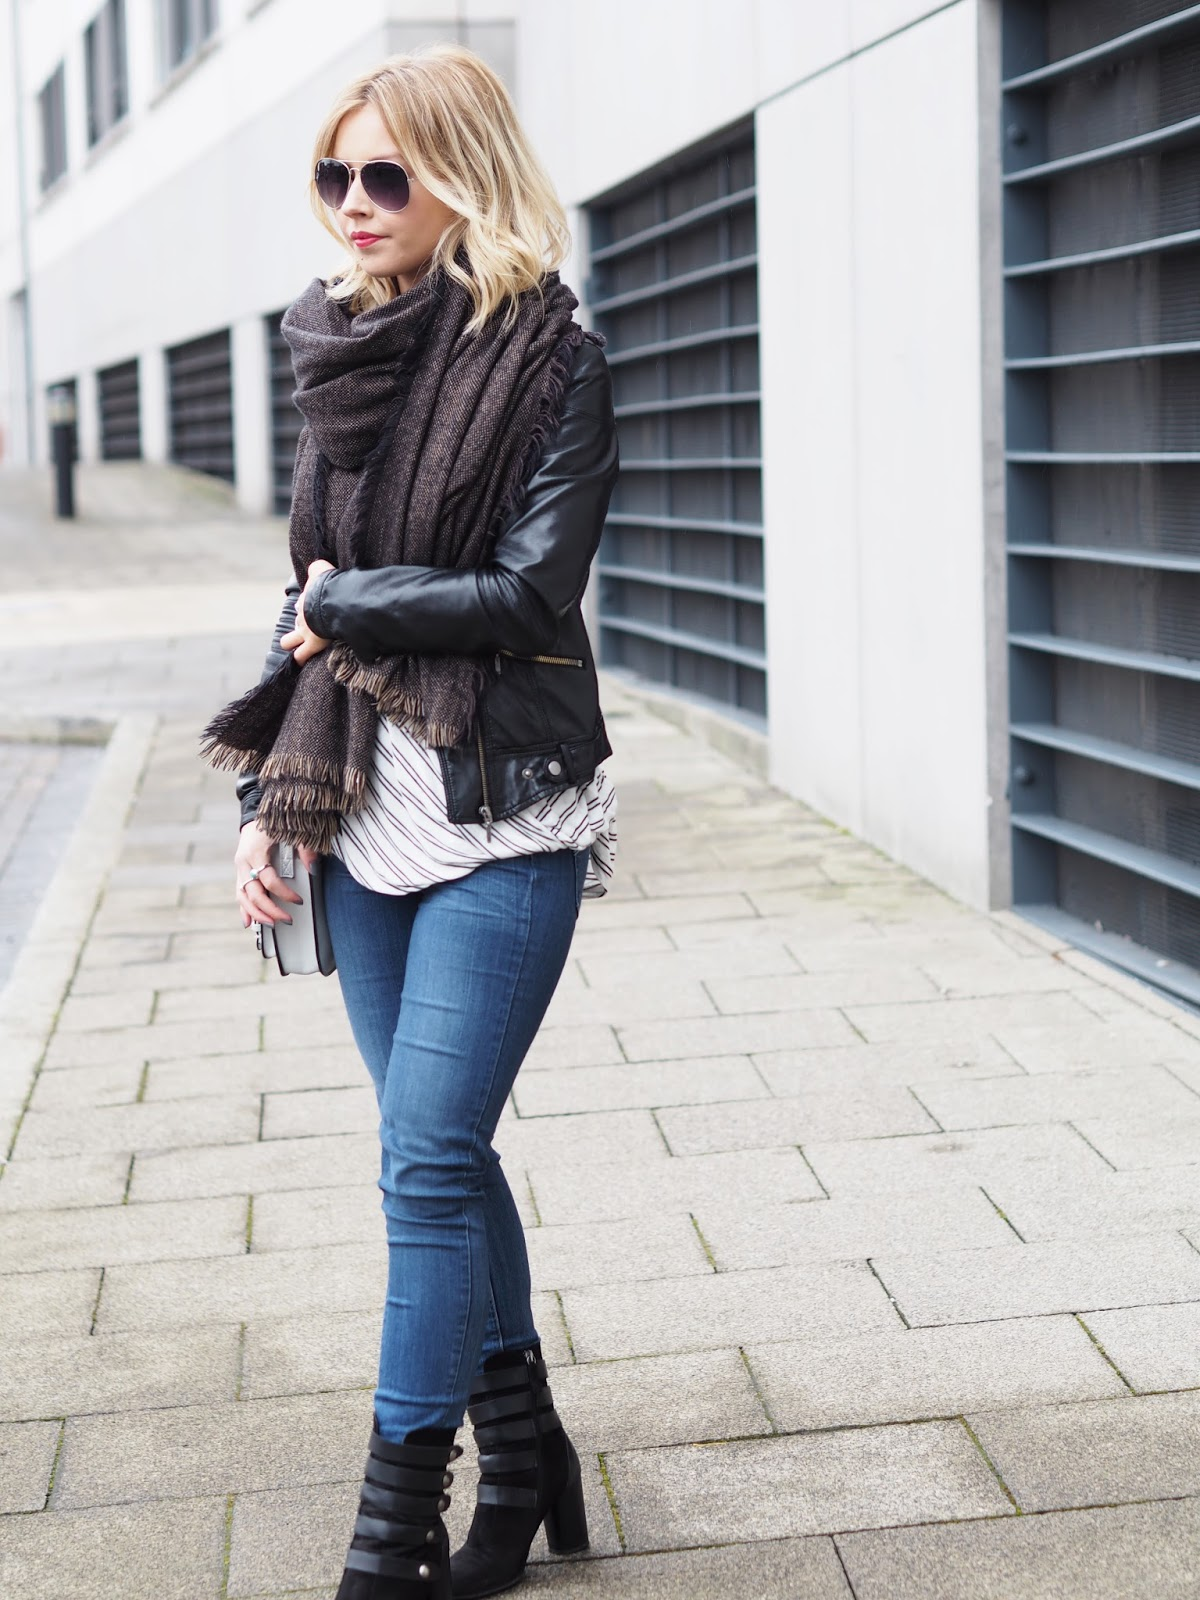 Street Style fashion blogger wearing zara casual outfit for winter wrap up warm fashion